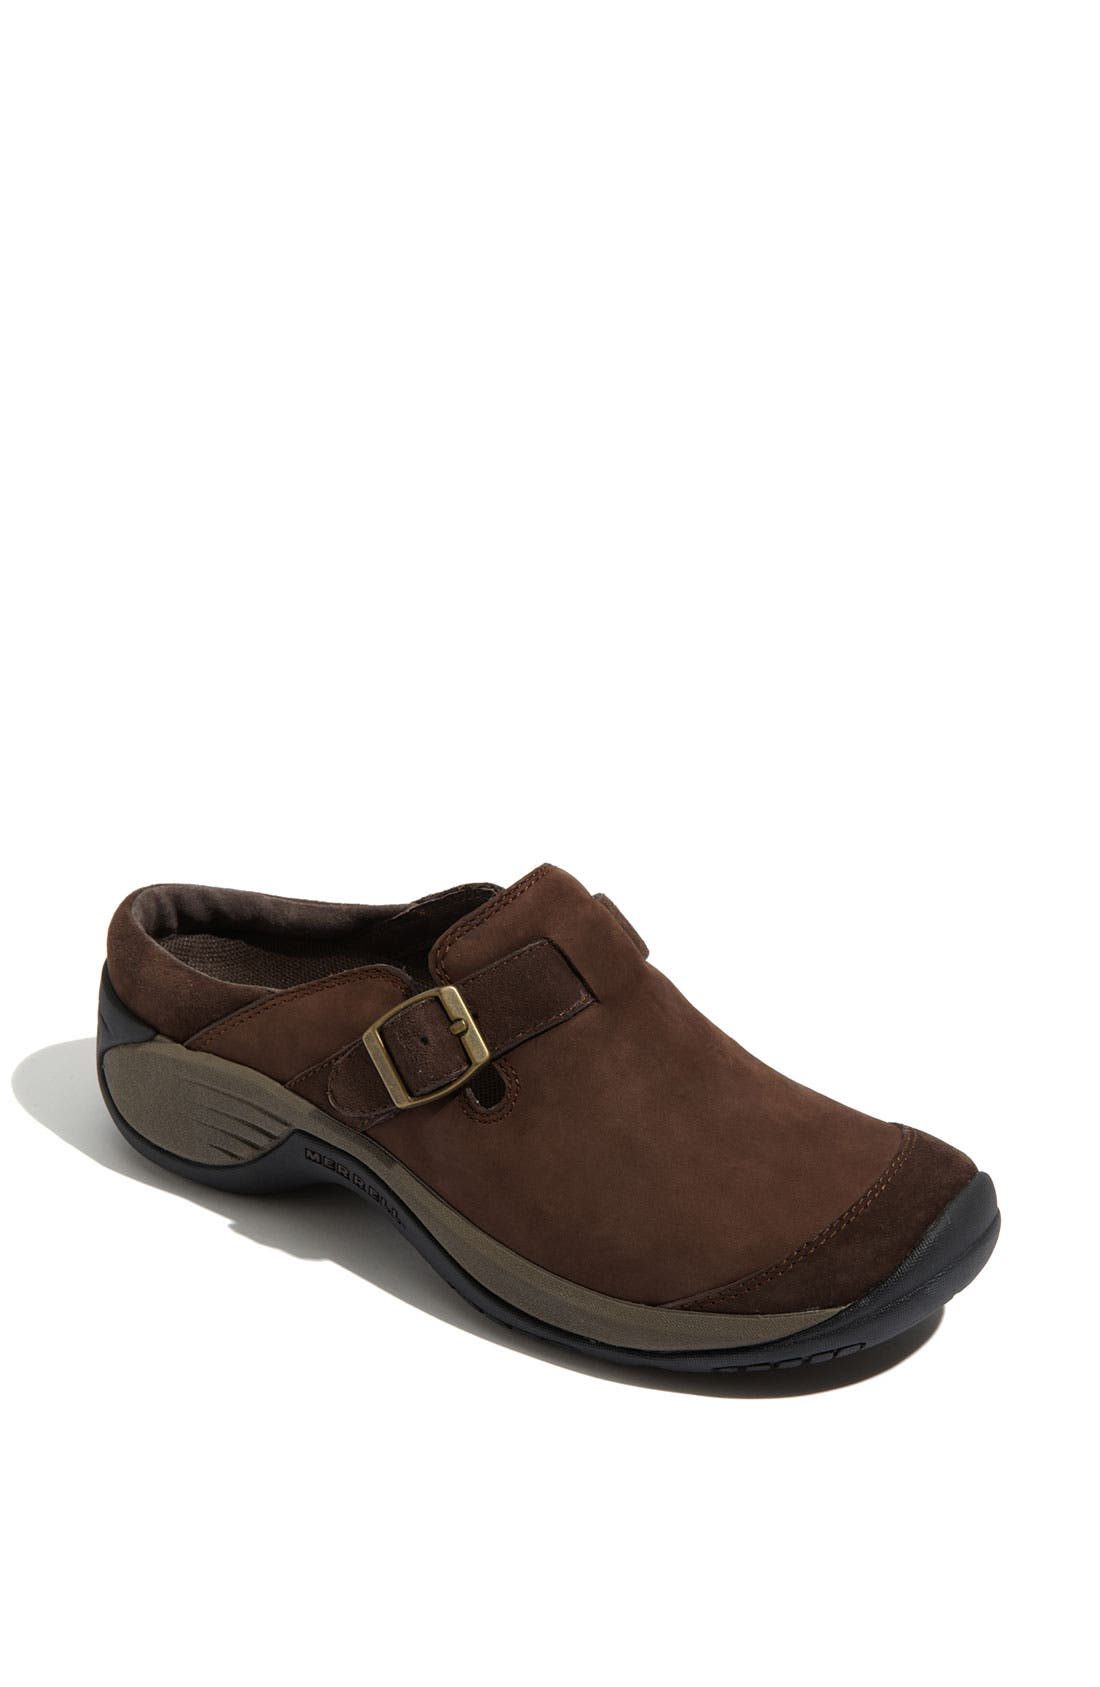 Main Image - Merrell 'Encore' Buckle Clog